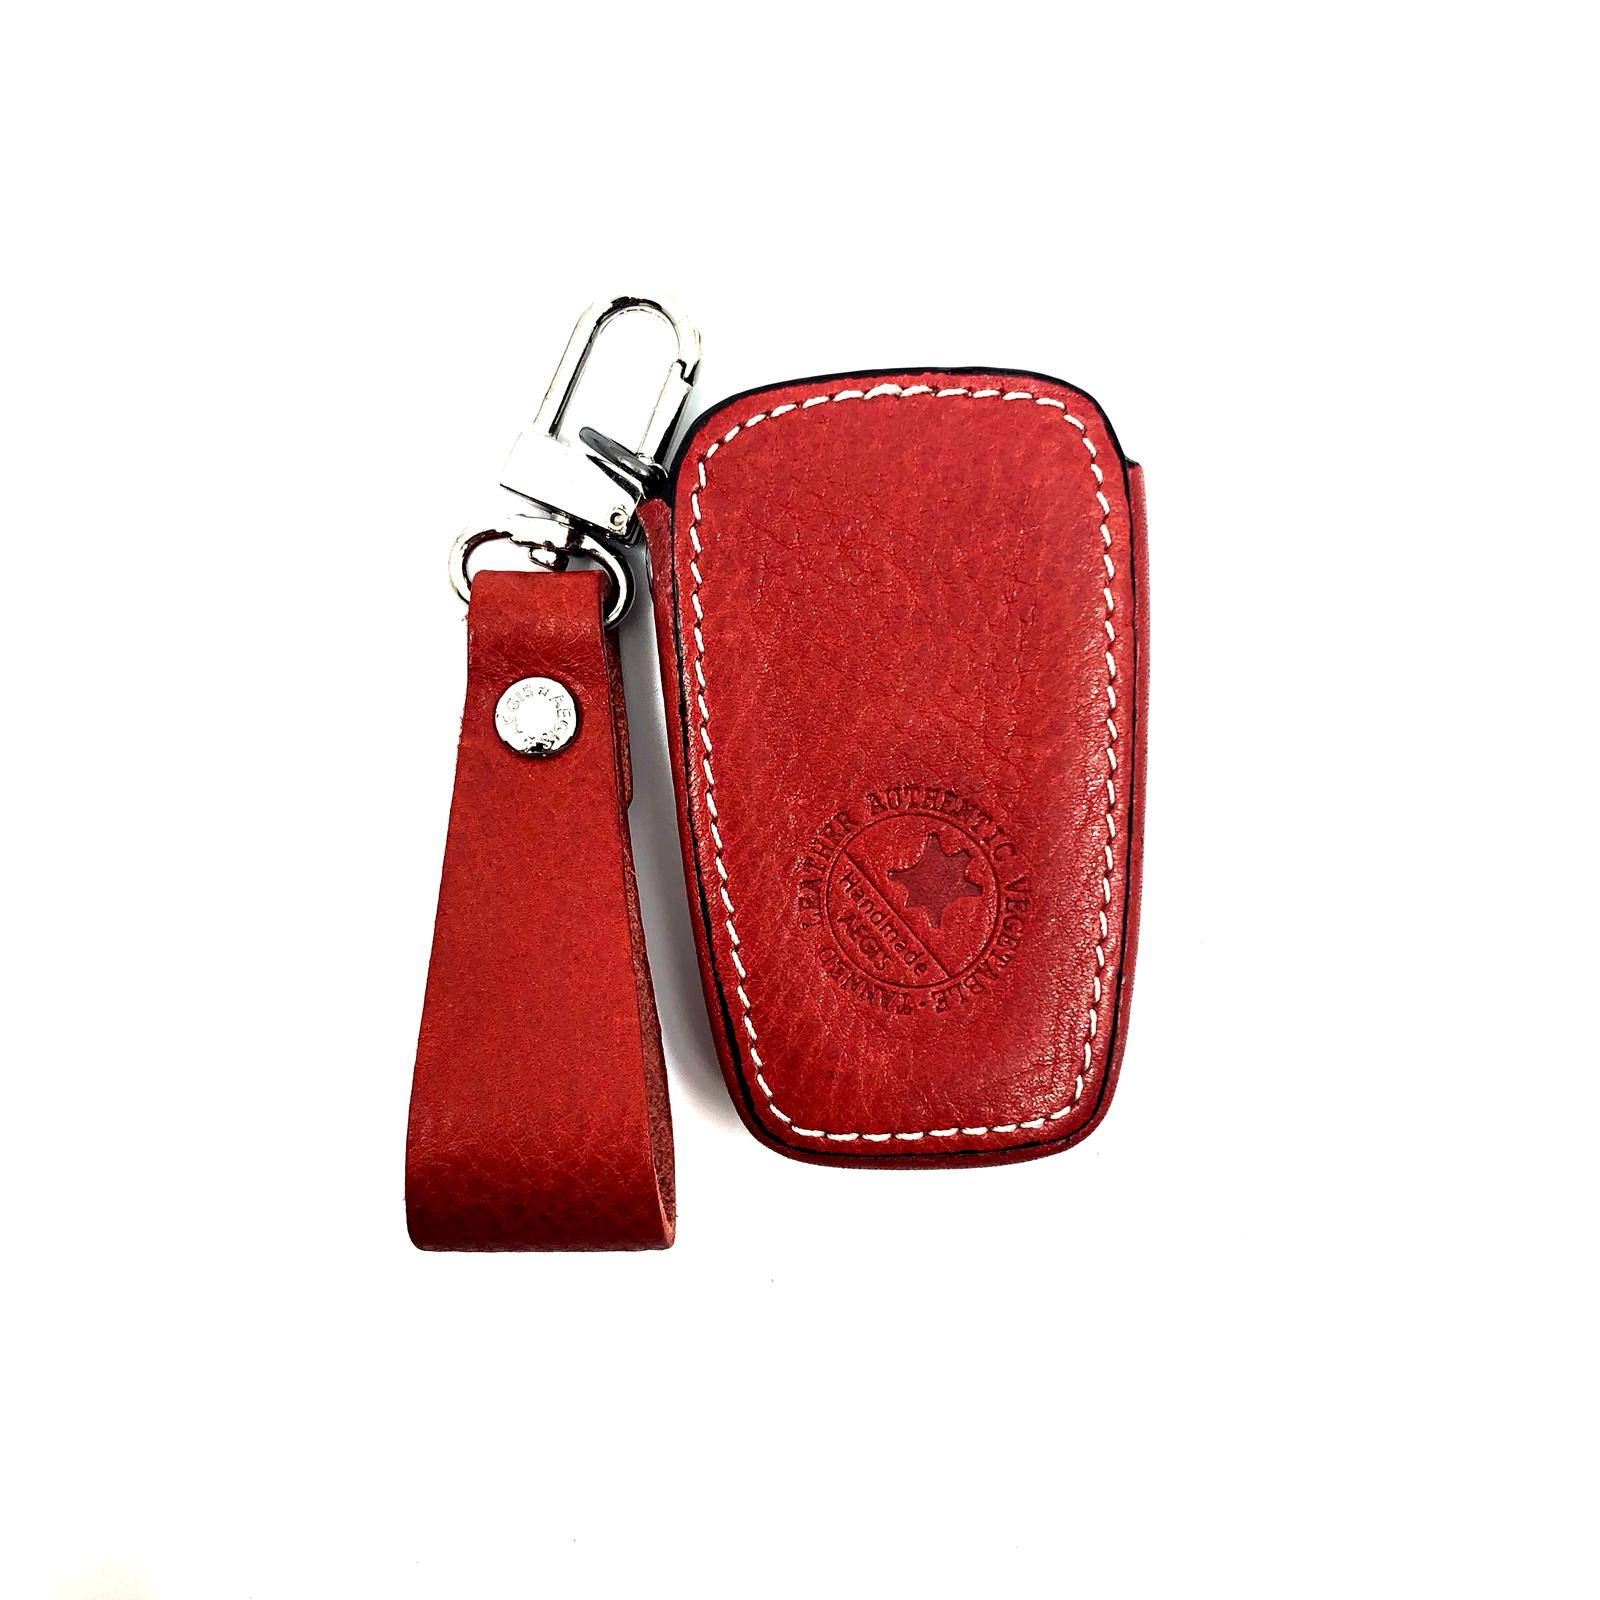 https://cdn.shopify.com/s/files/1/0059/3687/3585/products/TY2_RED.jpeg?v=1559037417